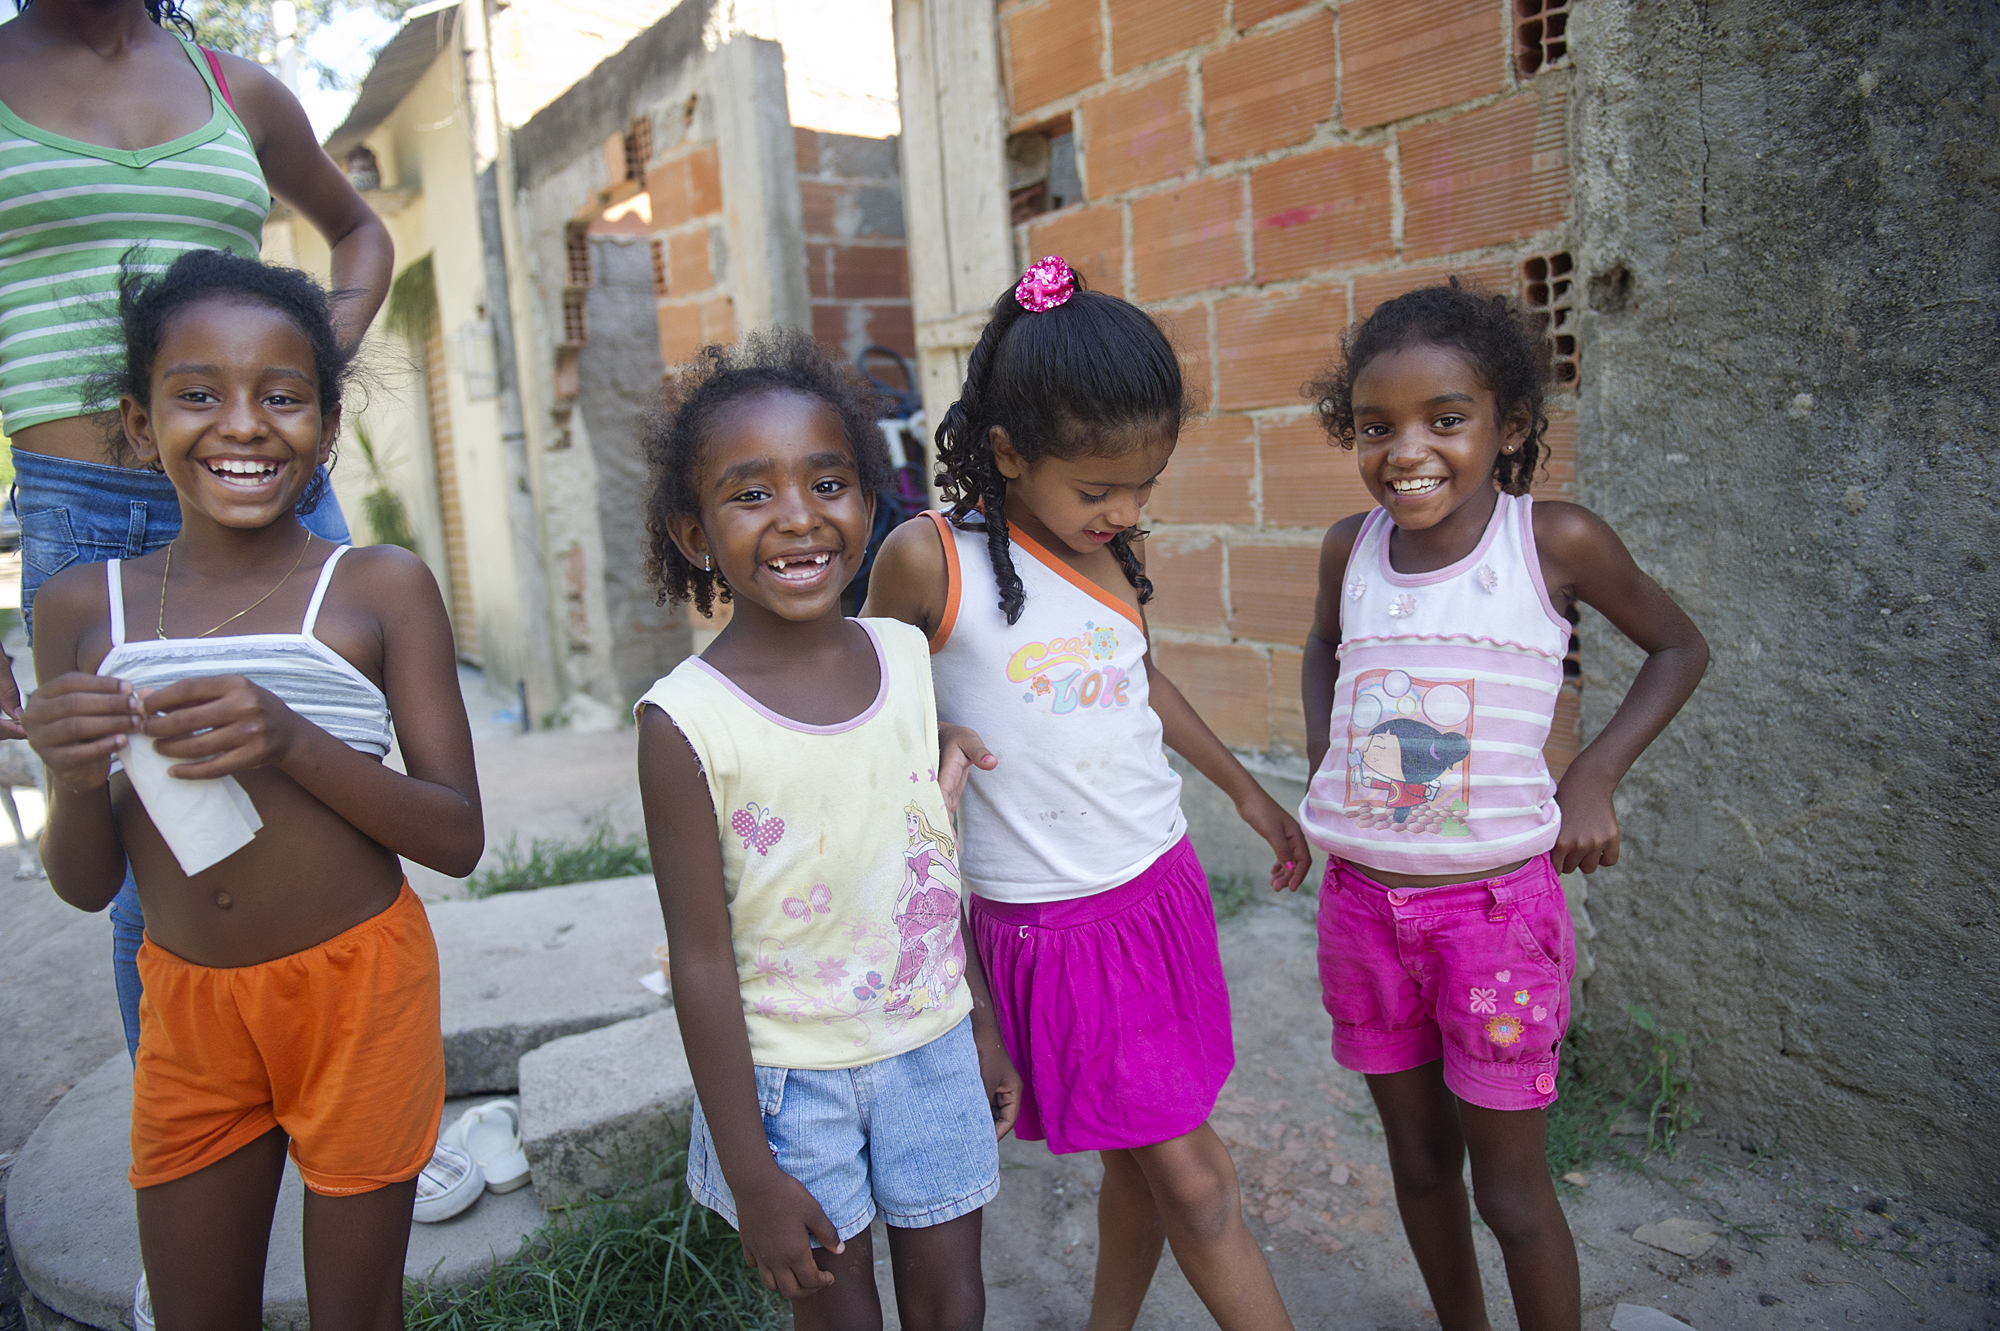 Sisters Thamires, 10, Joyce, 6, Raissa, 7, and cousin Maria (pink skirt), 6, giggle during a game of hopscotch in Vila Autodromo in Rio de Janeiro, Brazil, a favela that the government is trying to evictbecause it lays on Olympic planning ground. The city is set to host the 2016 Olympic games.